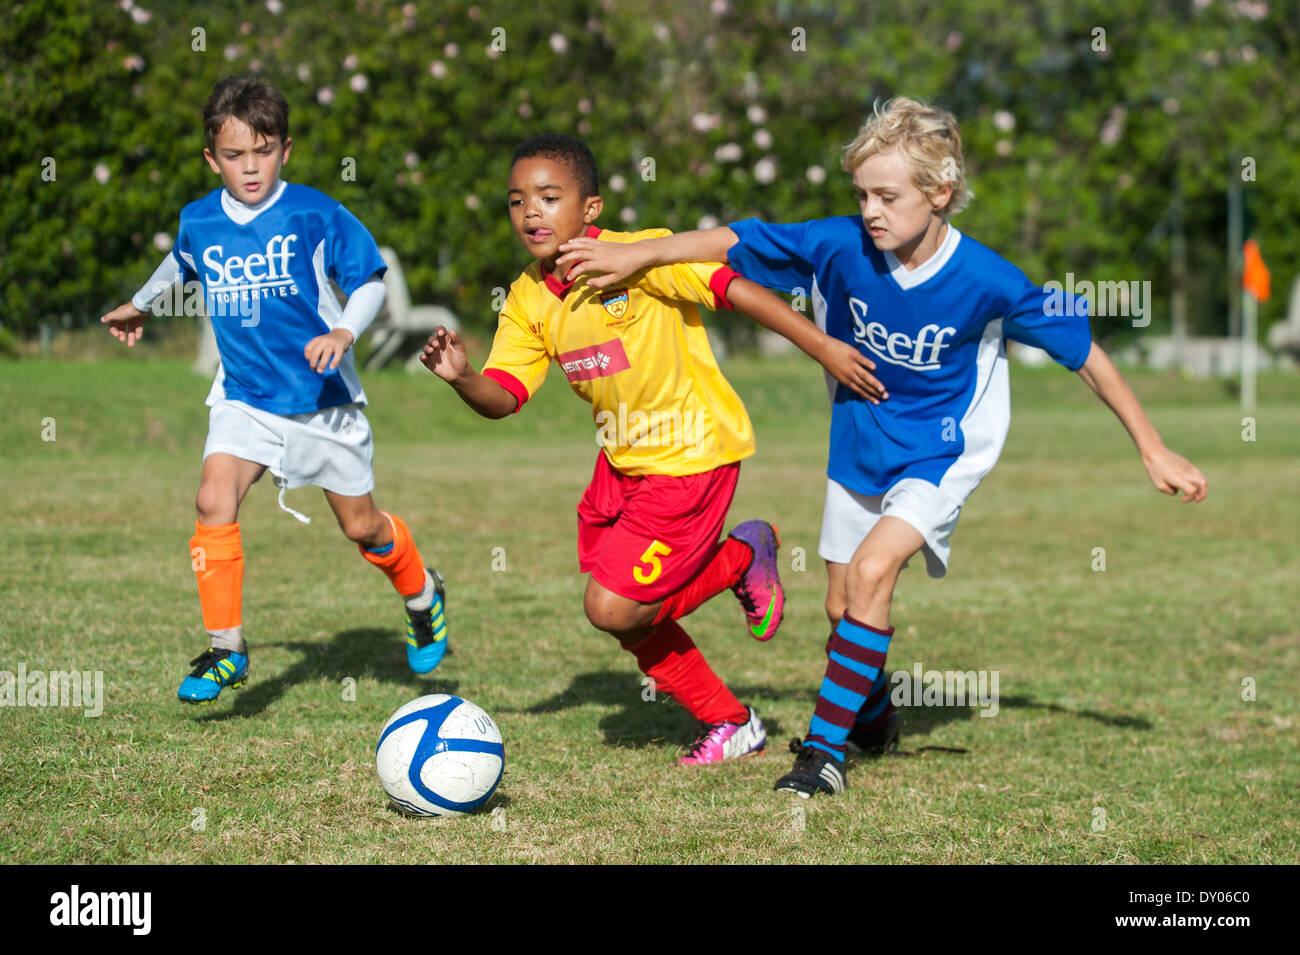 Football players of the U9 youth teams tackling to win the ball, Cape Town, South Africa - Stock Image